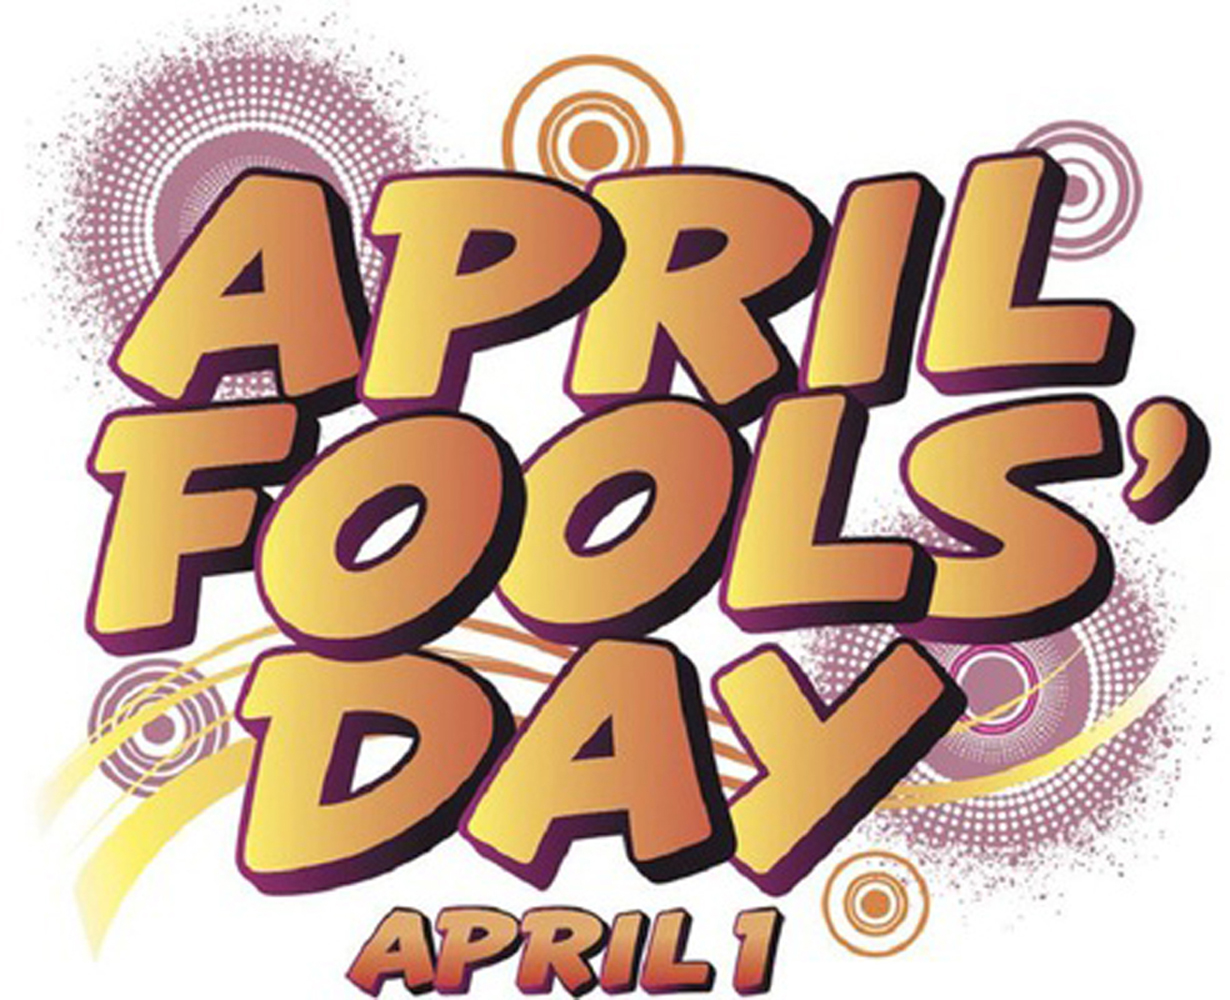 April fools day clipart wallpapers jpg transparent stock 17 Best images about APRIL FOOL on Pinterest | Prank ideas, Happy ... jpg transparent stock